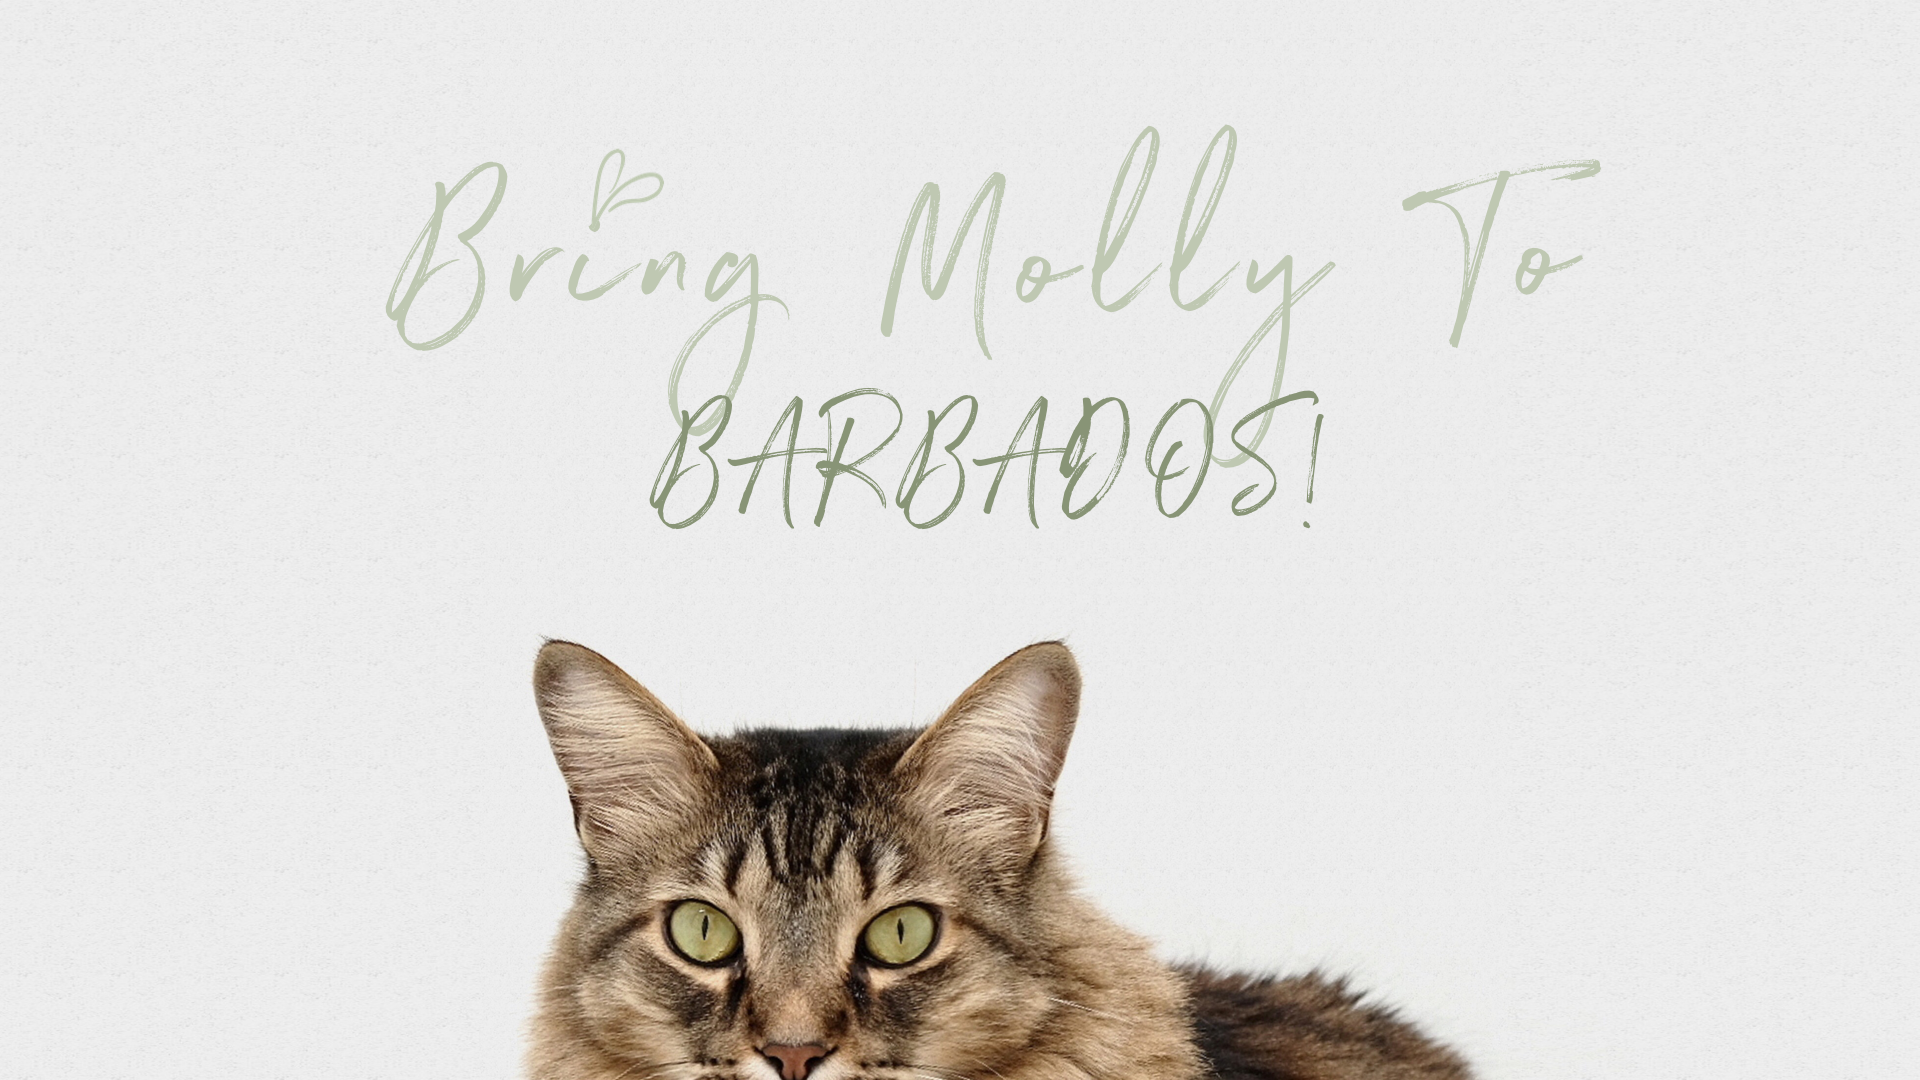 Bring Molly to Barbados!